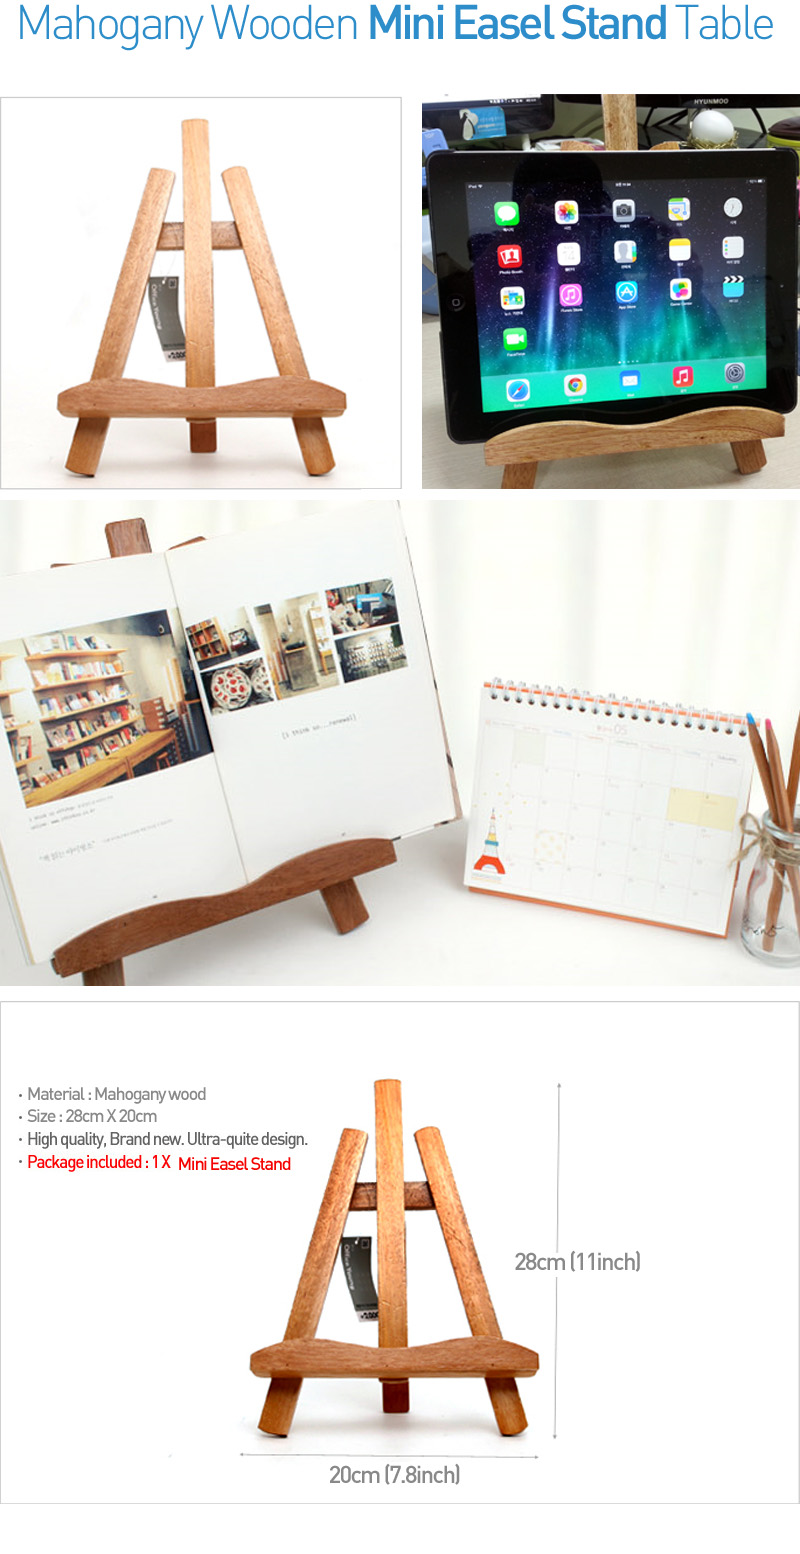 Small Exhibition Stand Sizes : Mahogany wooden mini easel stand table small size display